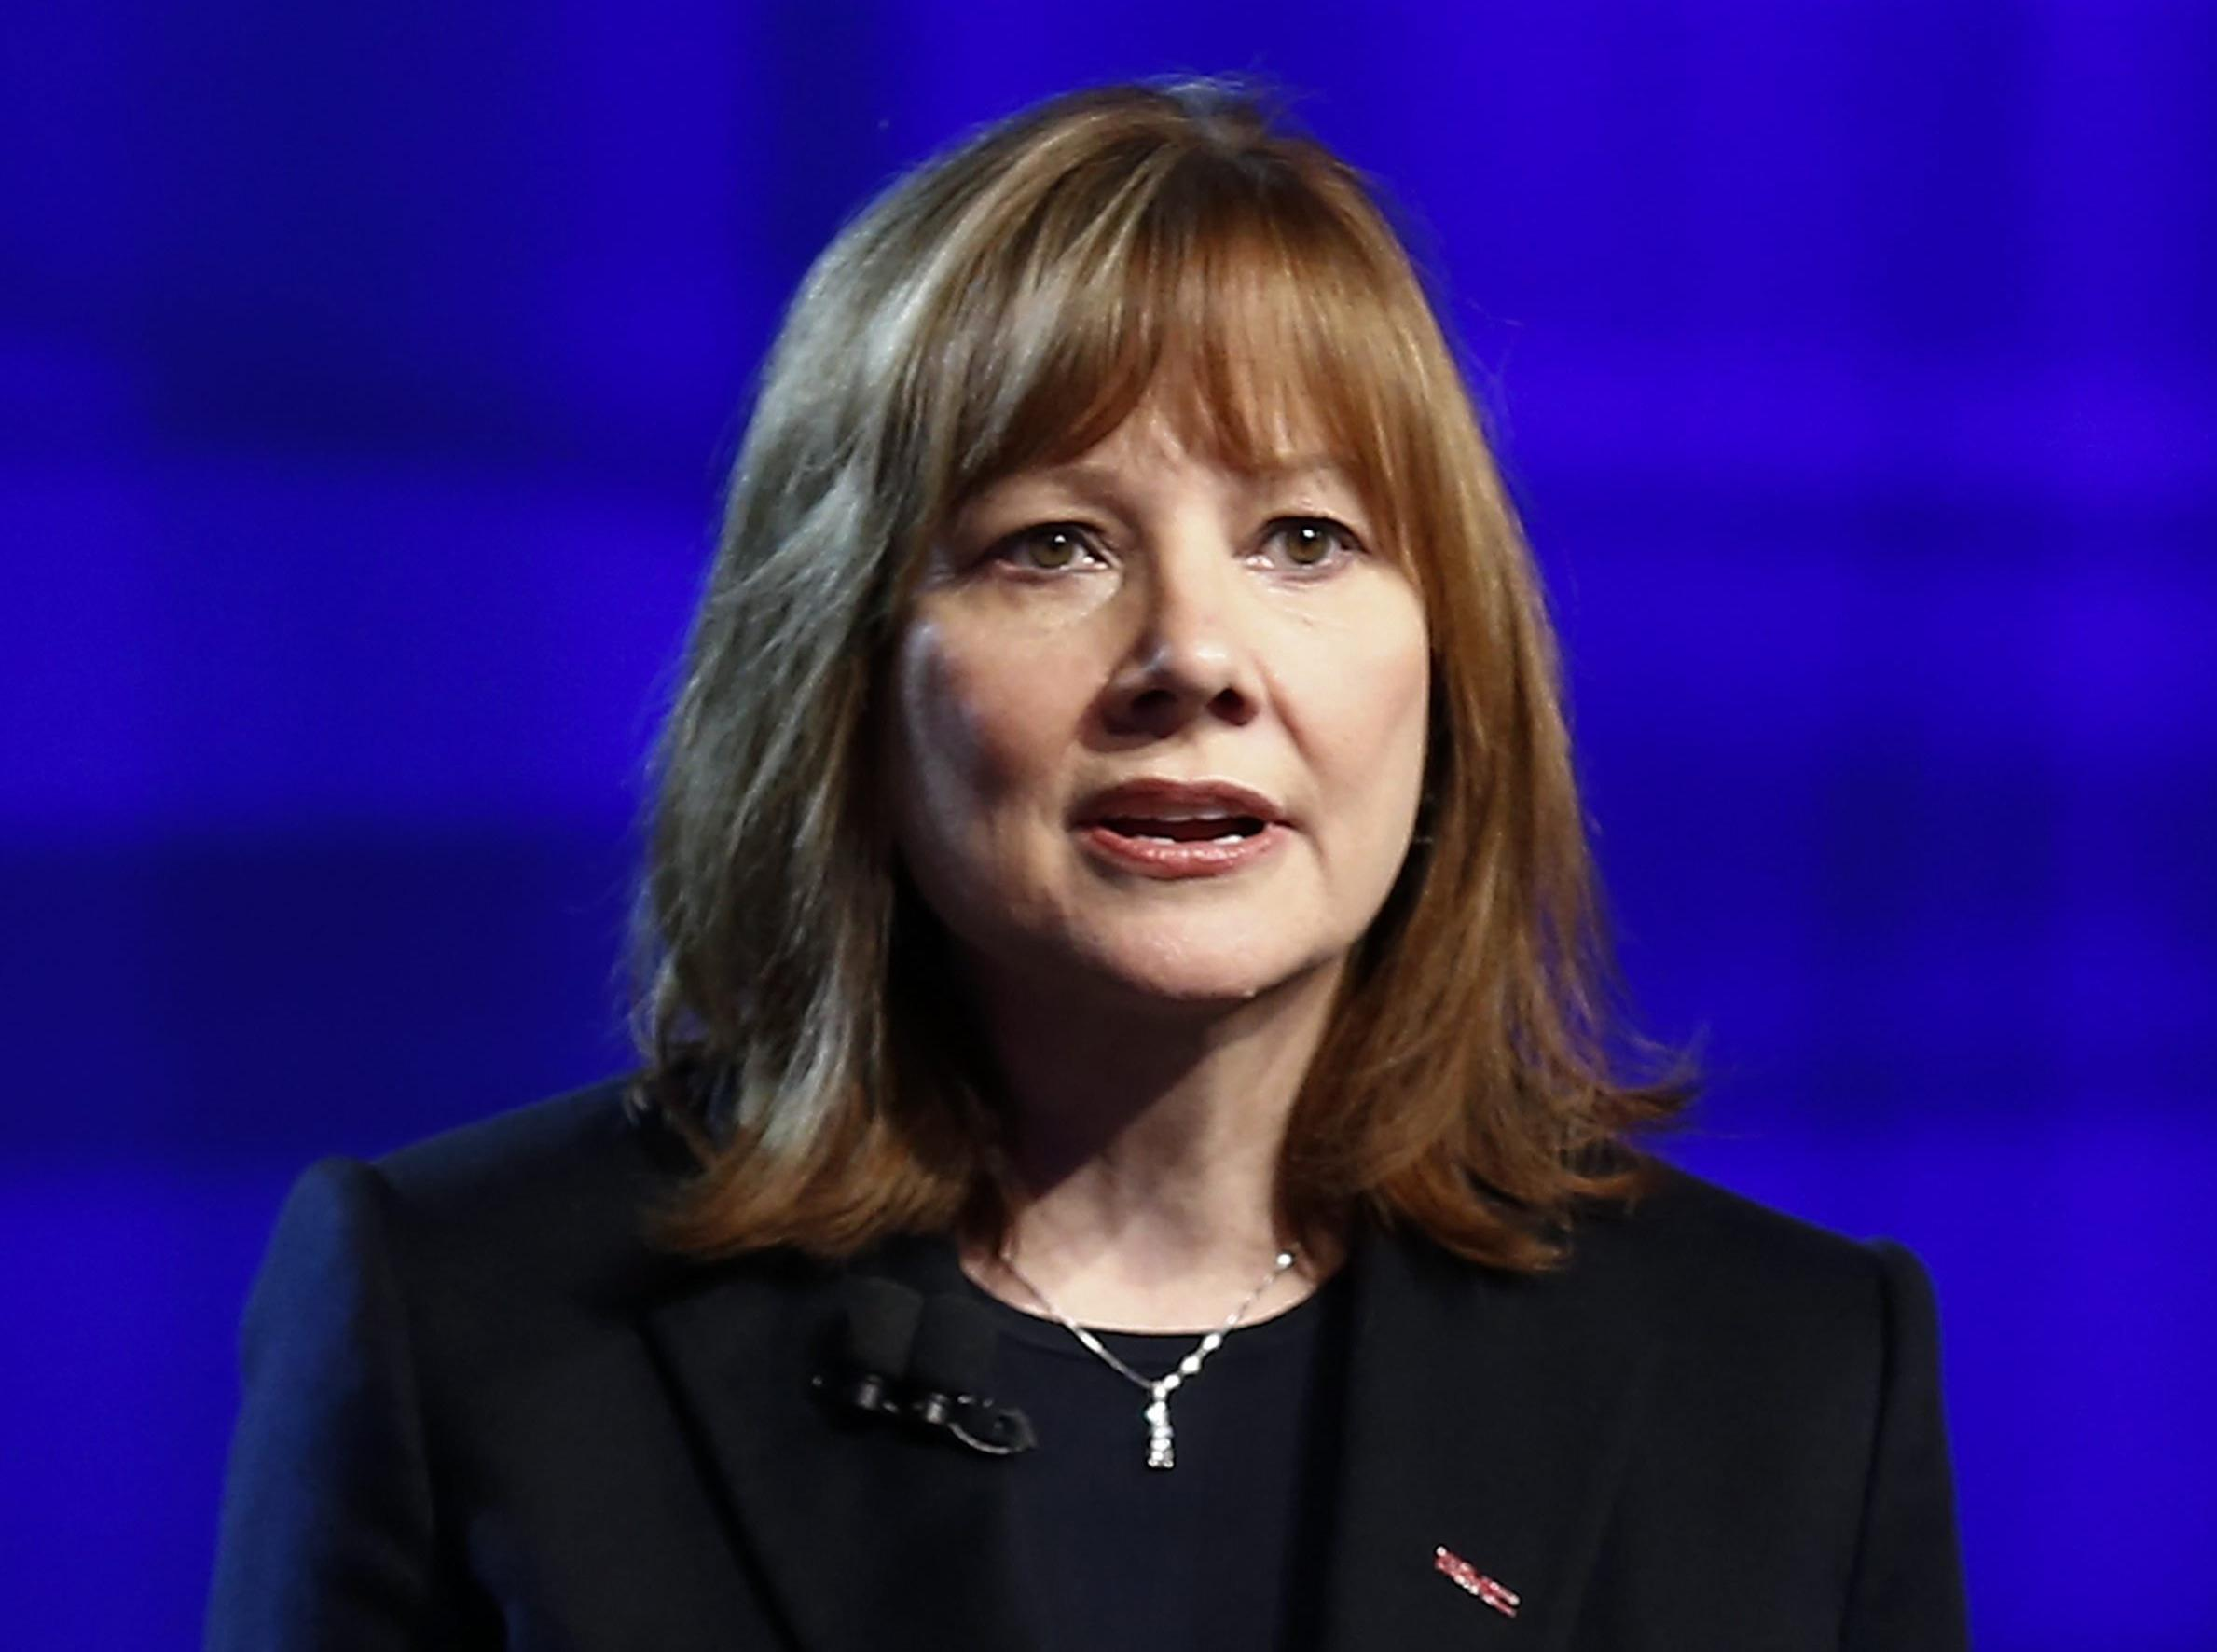 Pay Gap New Gm Ceo Mary Barra To Earn Less Than